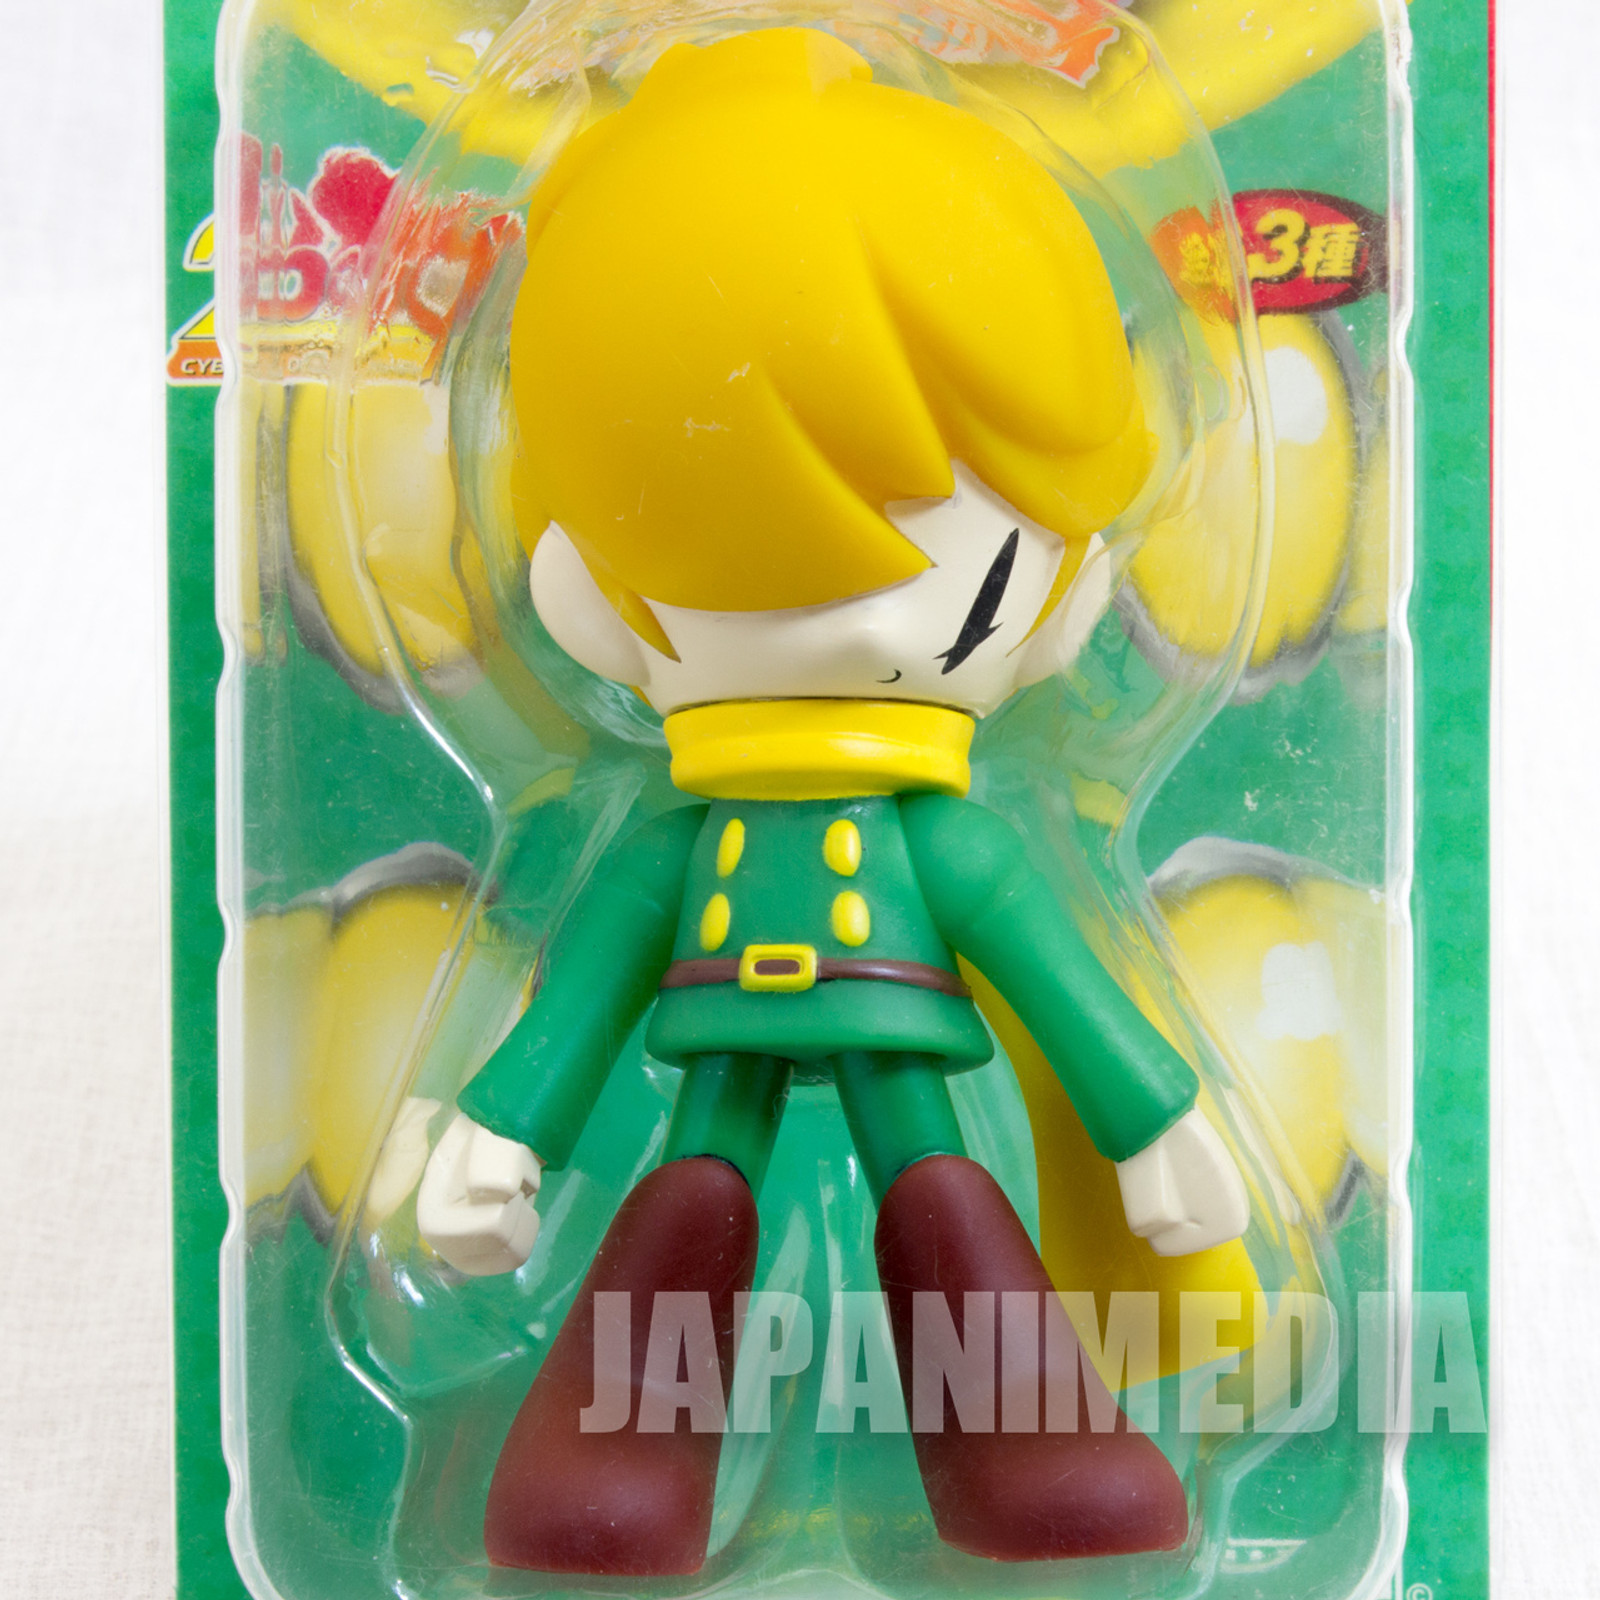 Cyborg 009 x Kaijin Joe Shimamura Green Ver. Soft Vinyl Figure Furyu JAPAN